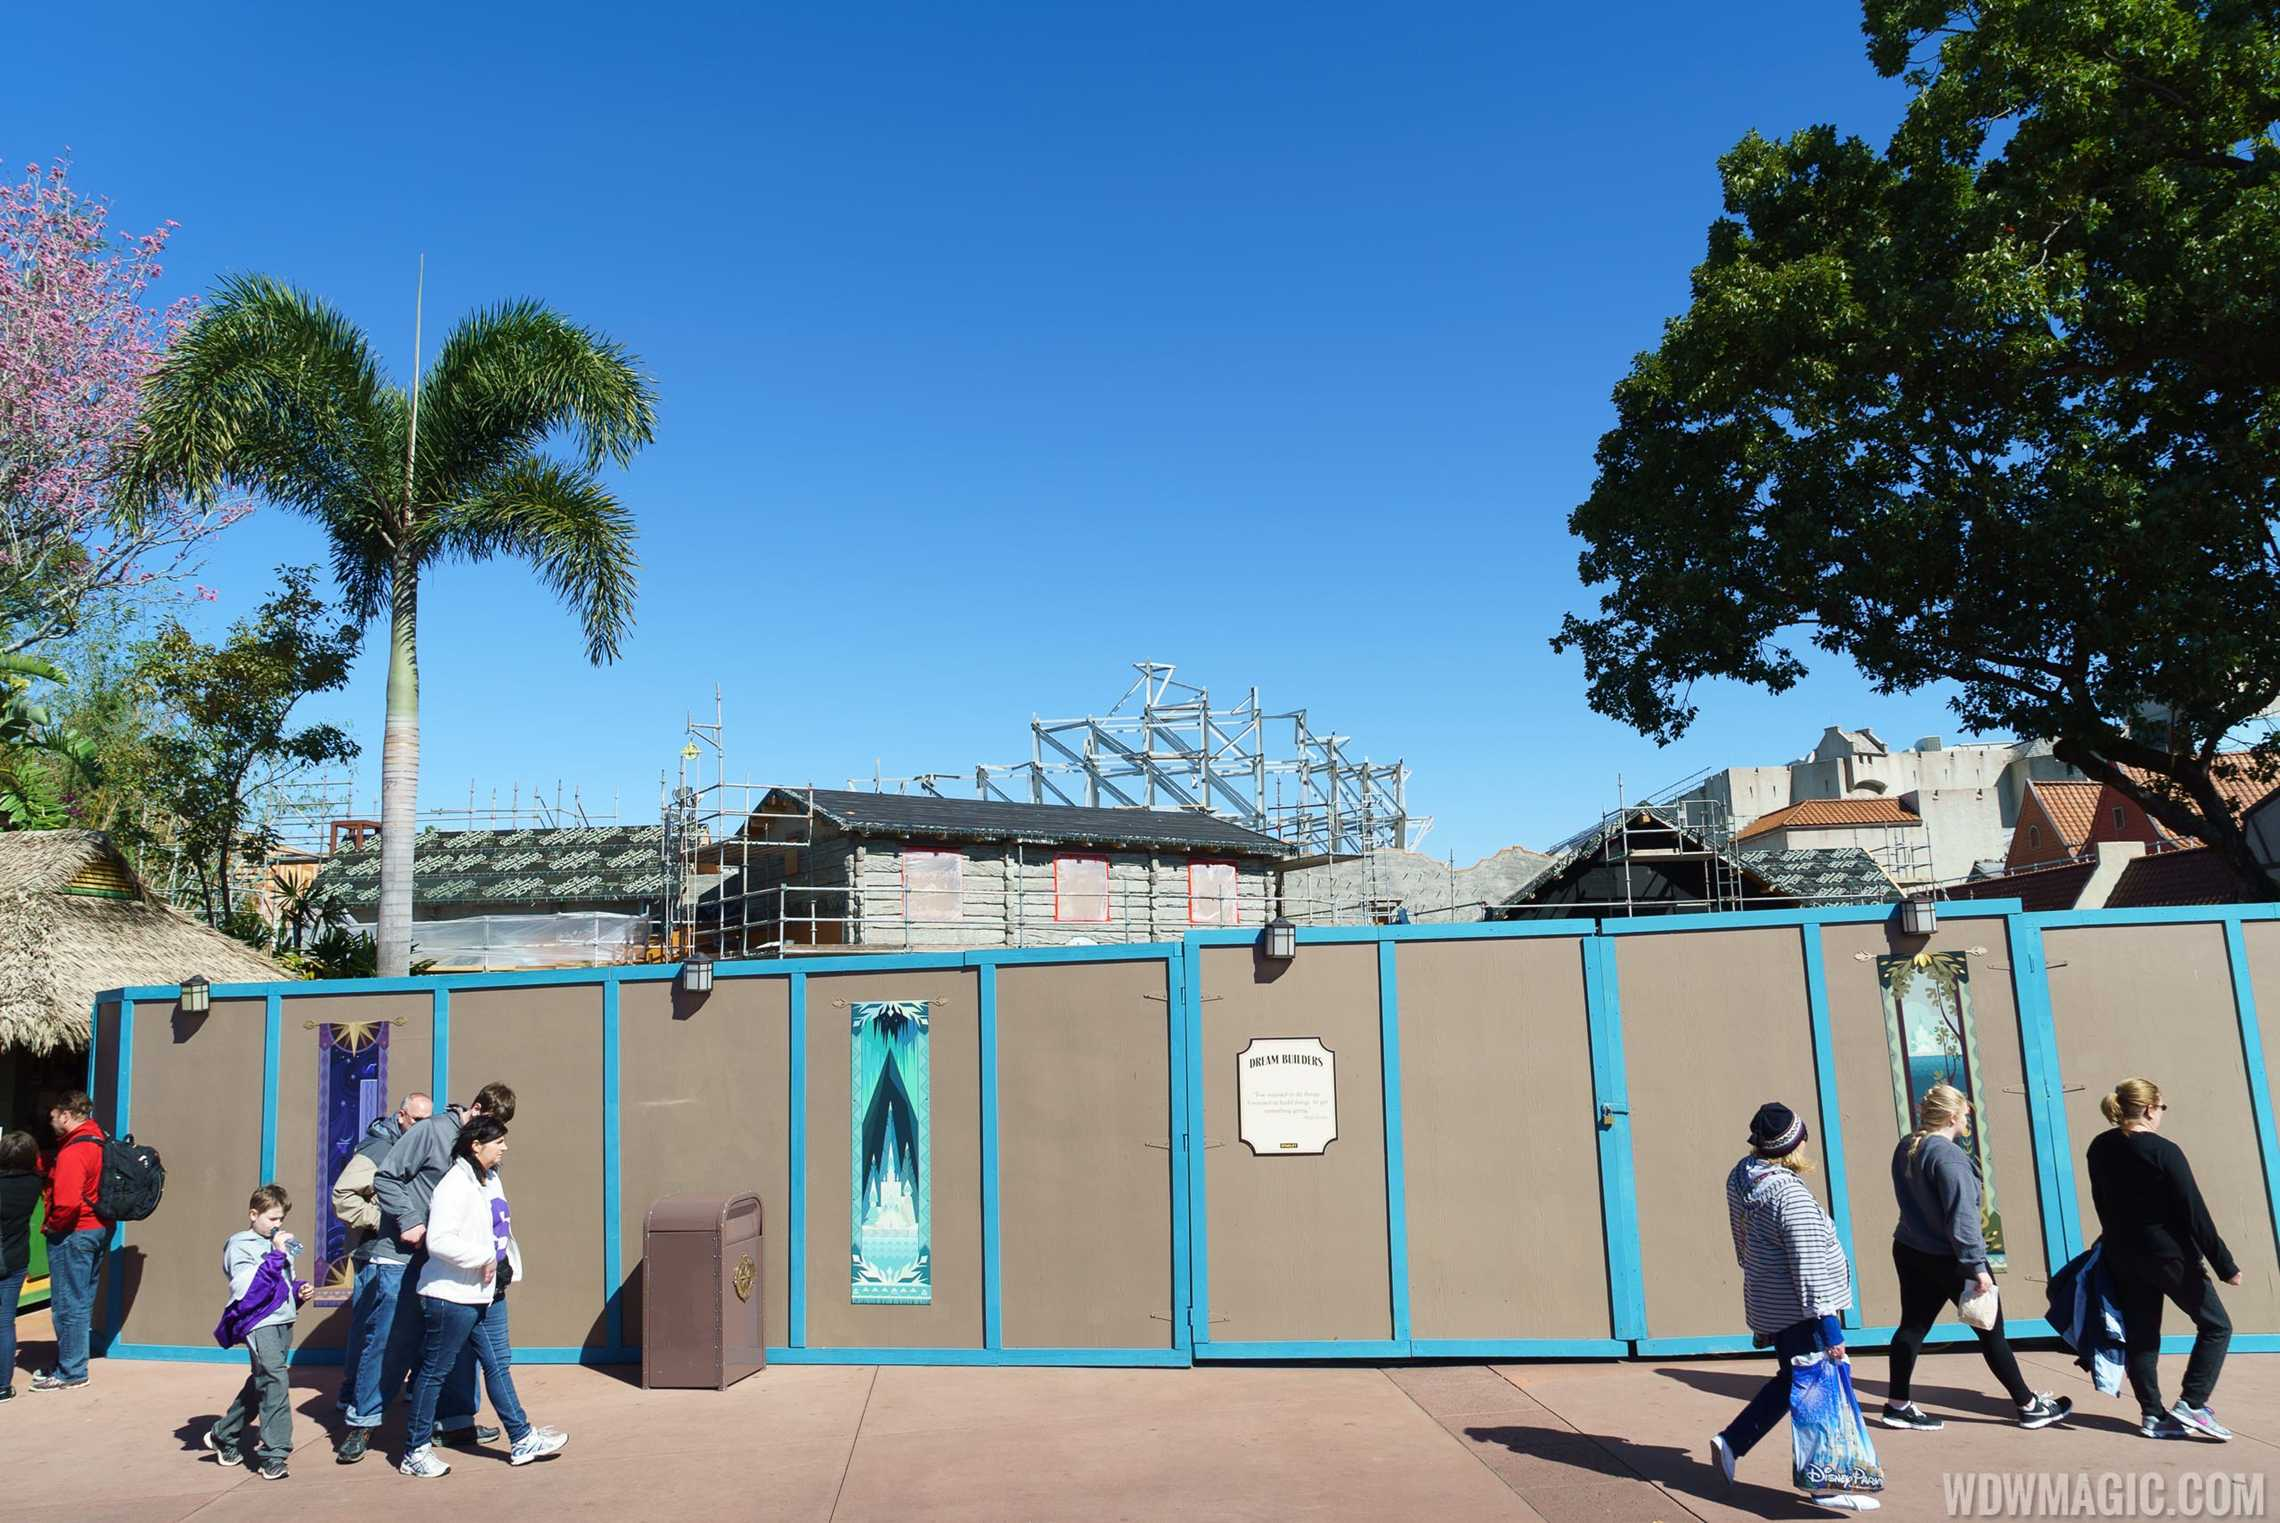 Royal Sommerhus Frozen meet and greet construction